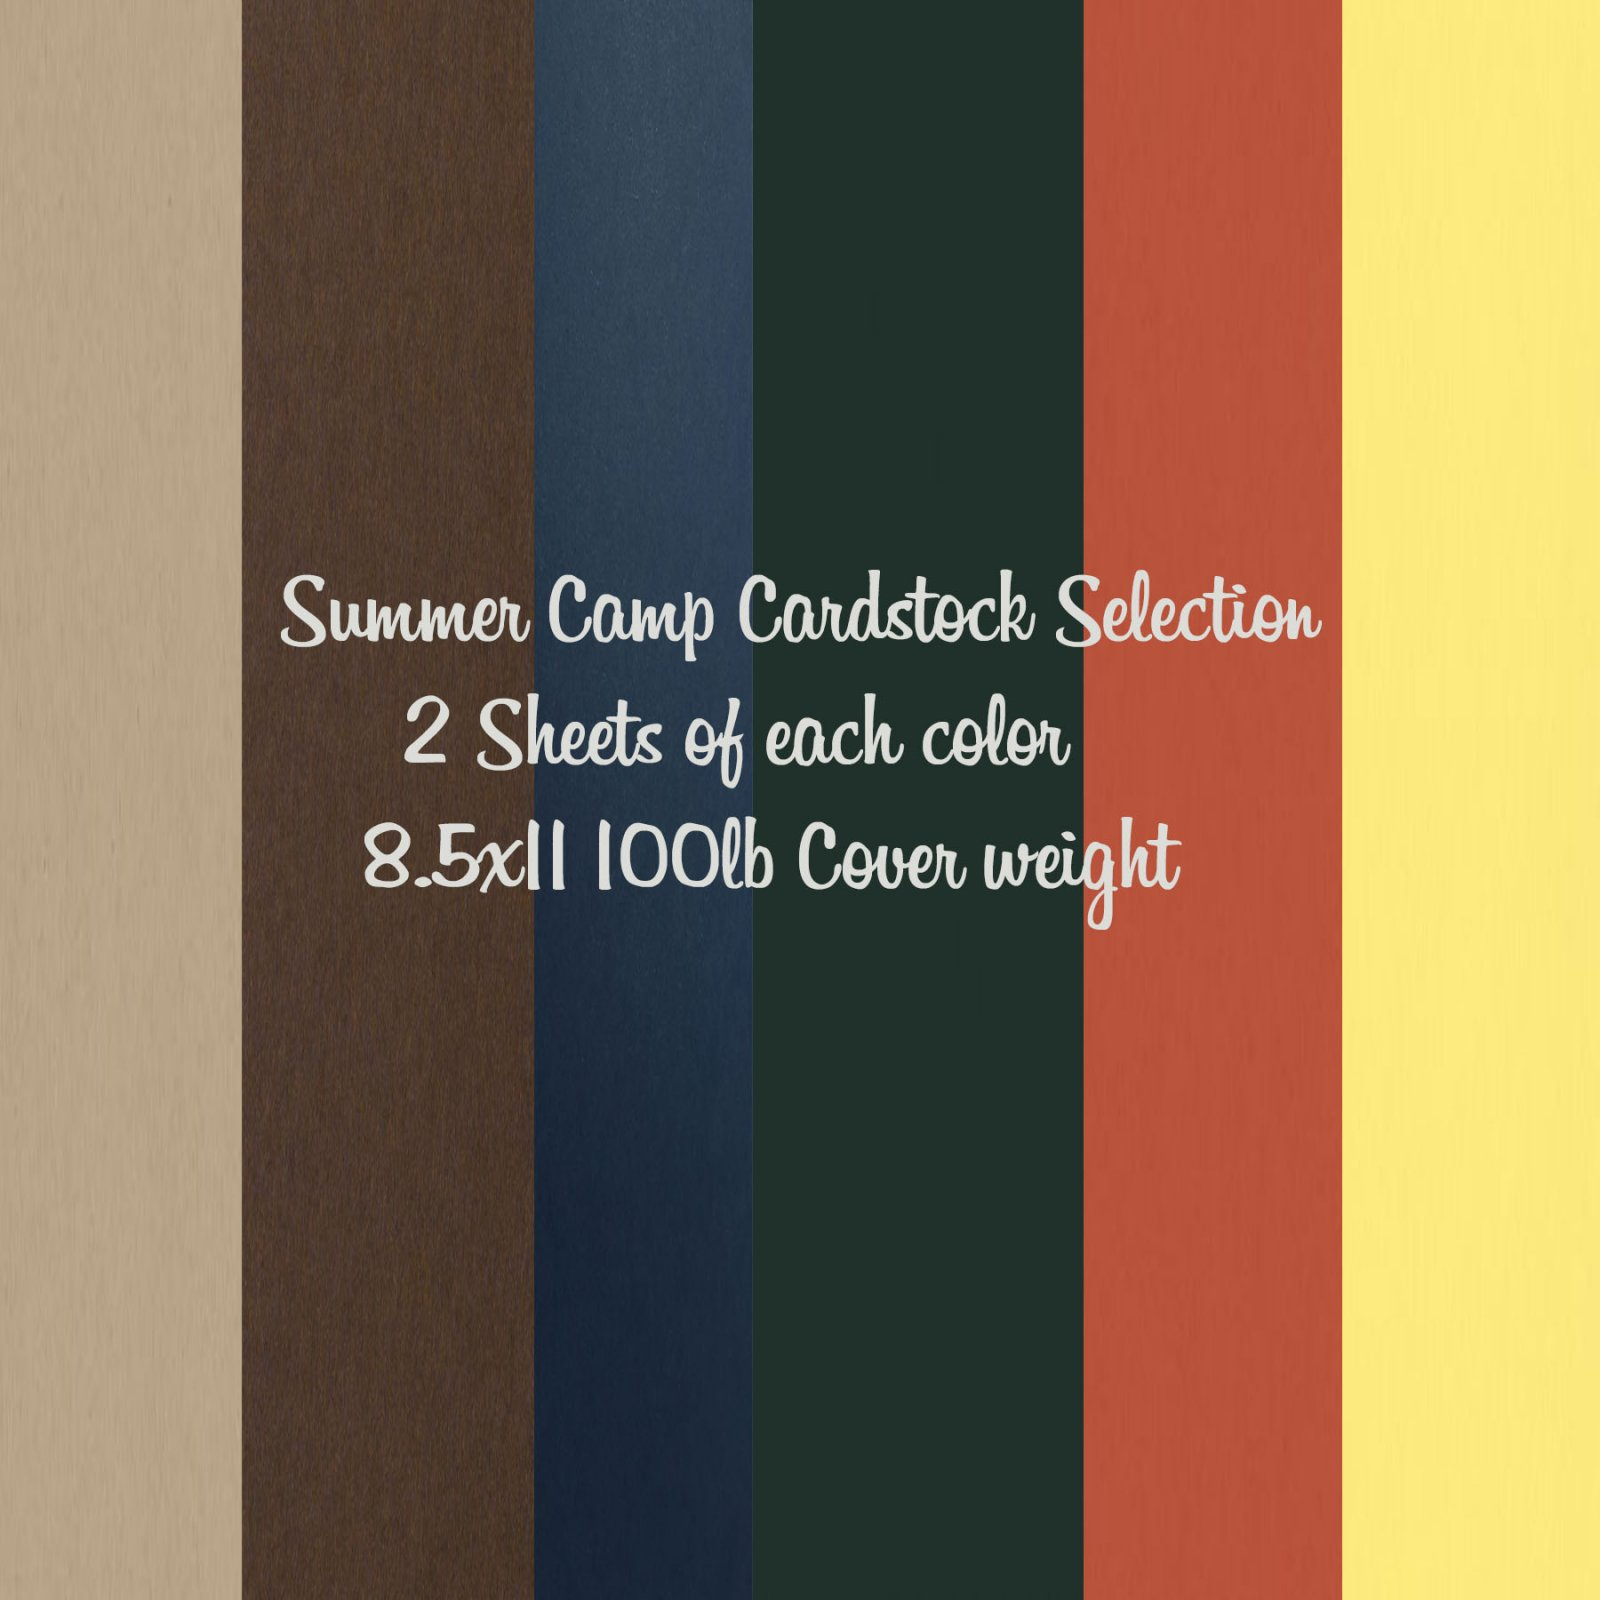 Summer Camp Cardstock Selection